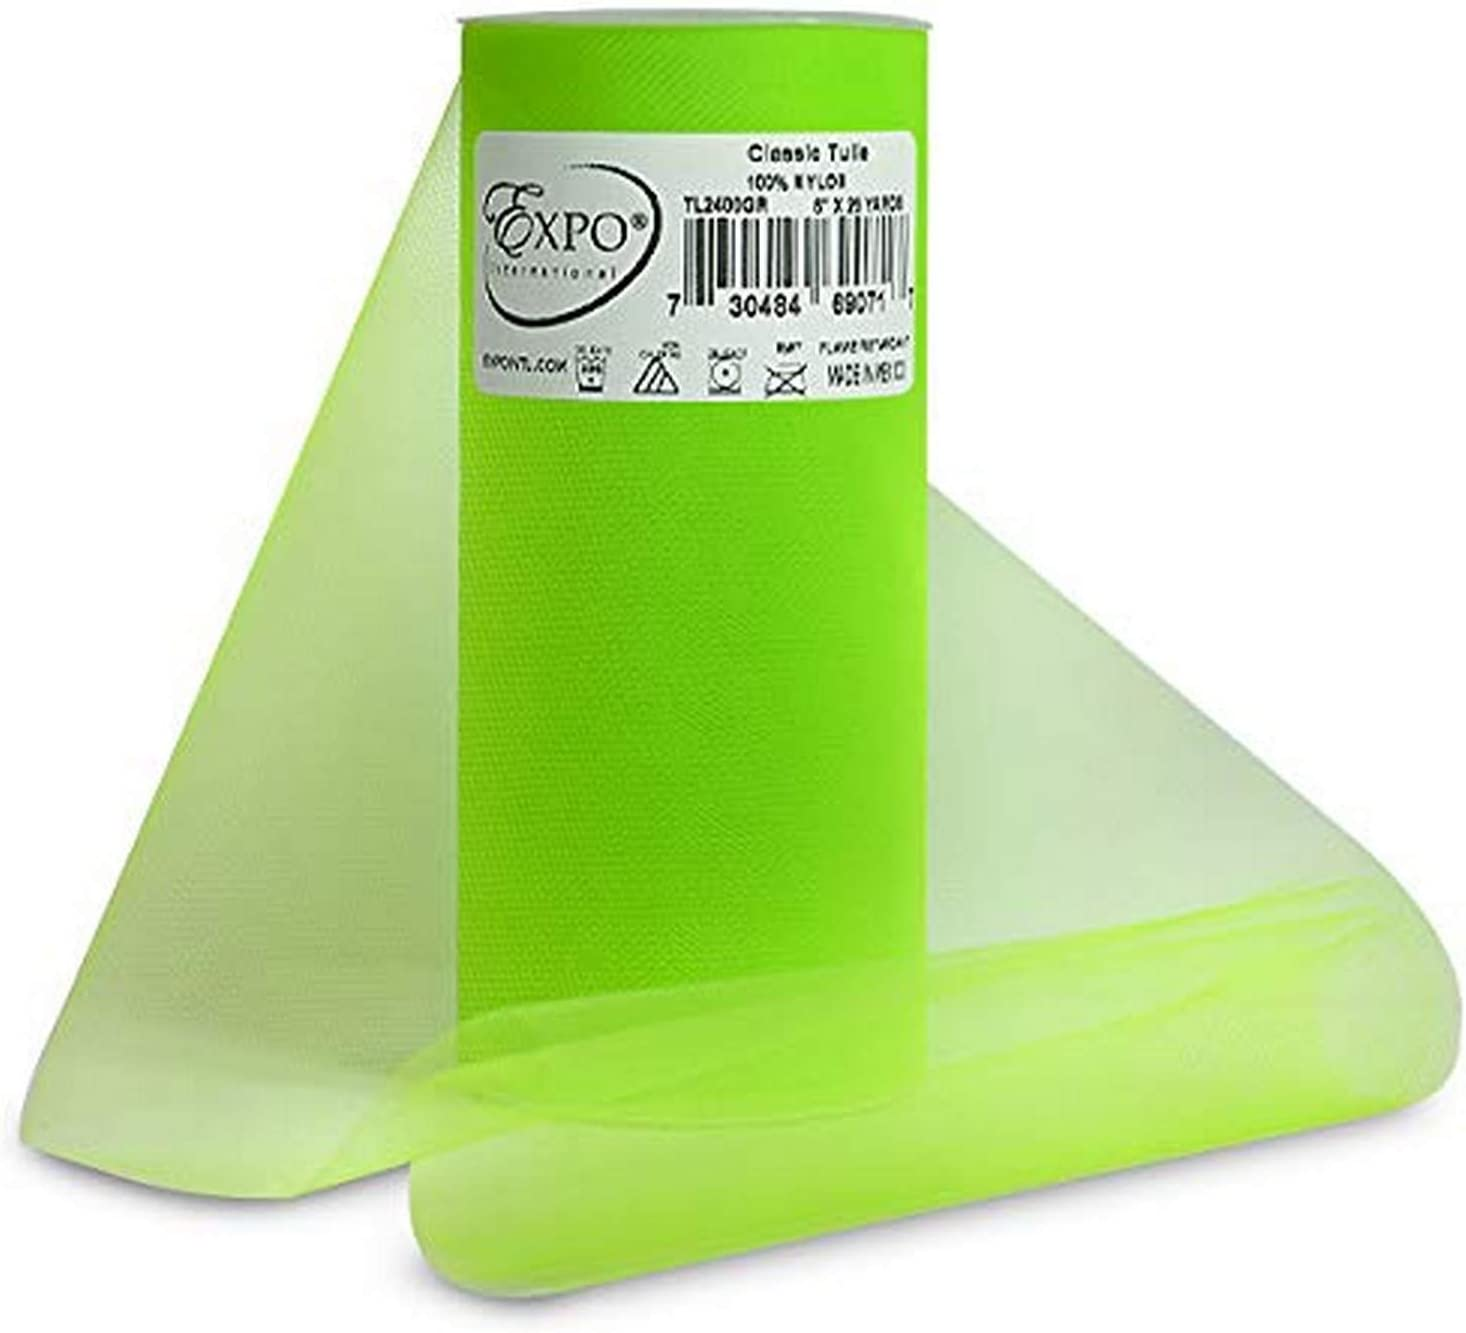 EXPO Classic Tulle Spool of 25-Yard, Green